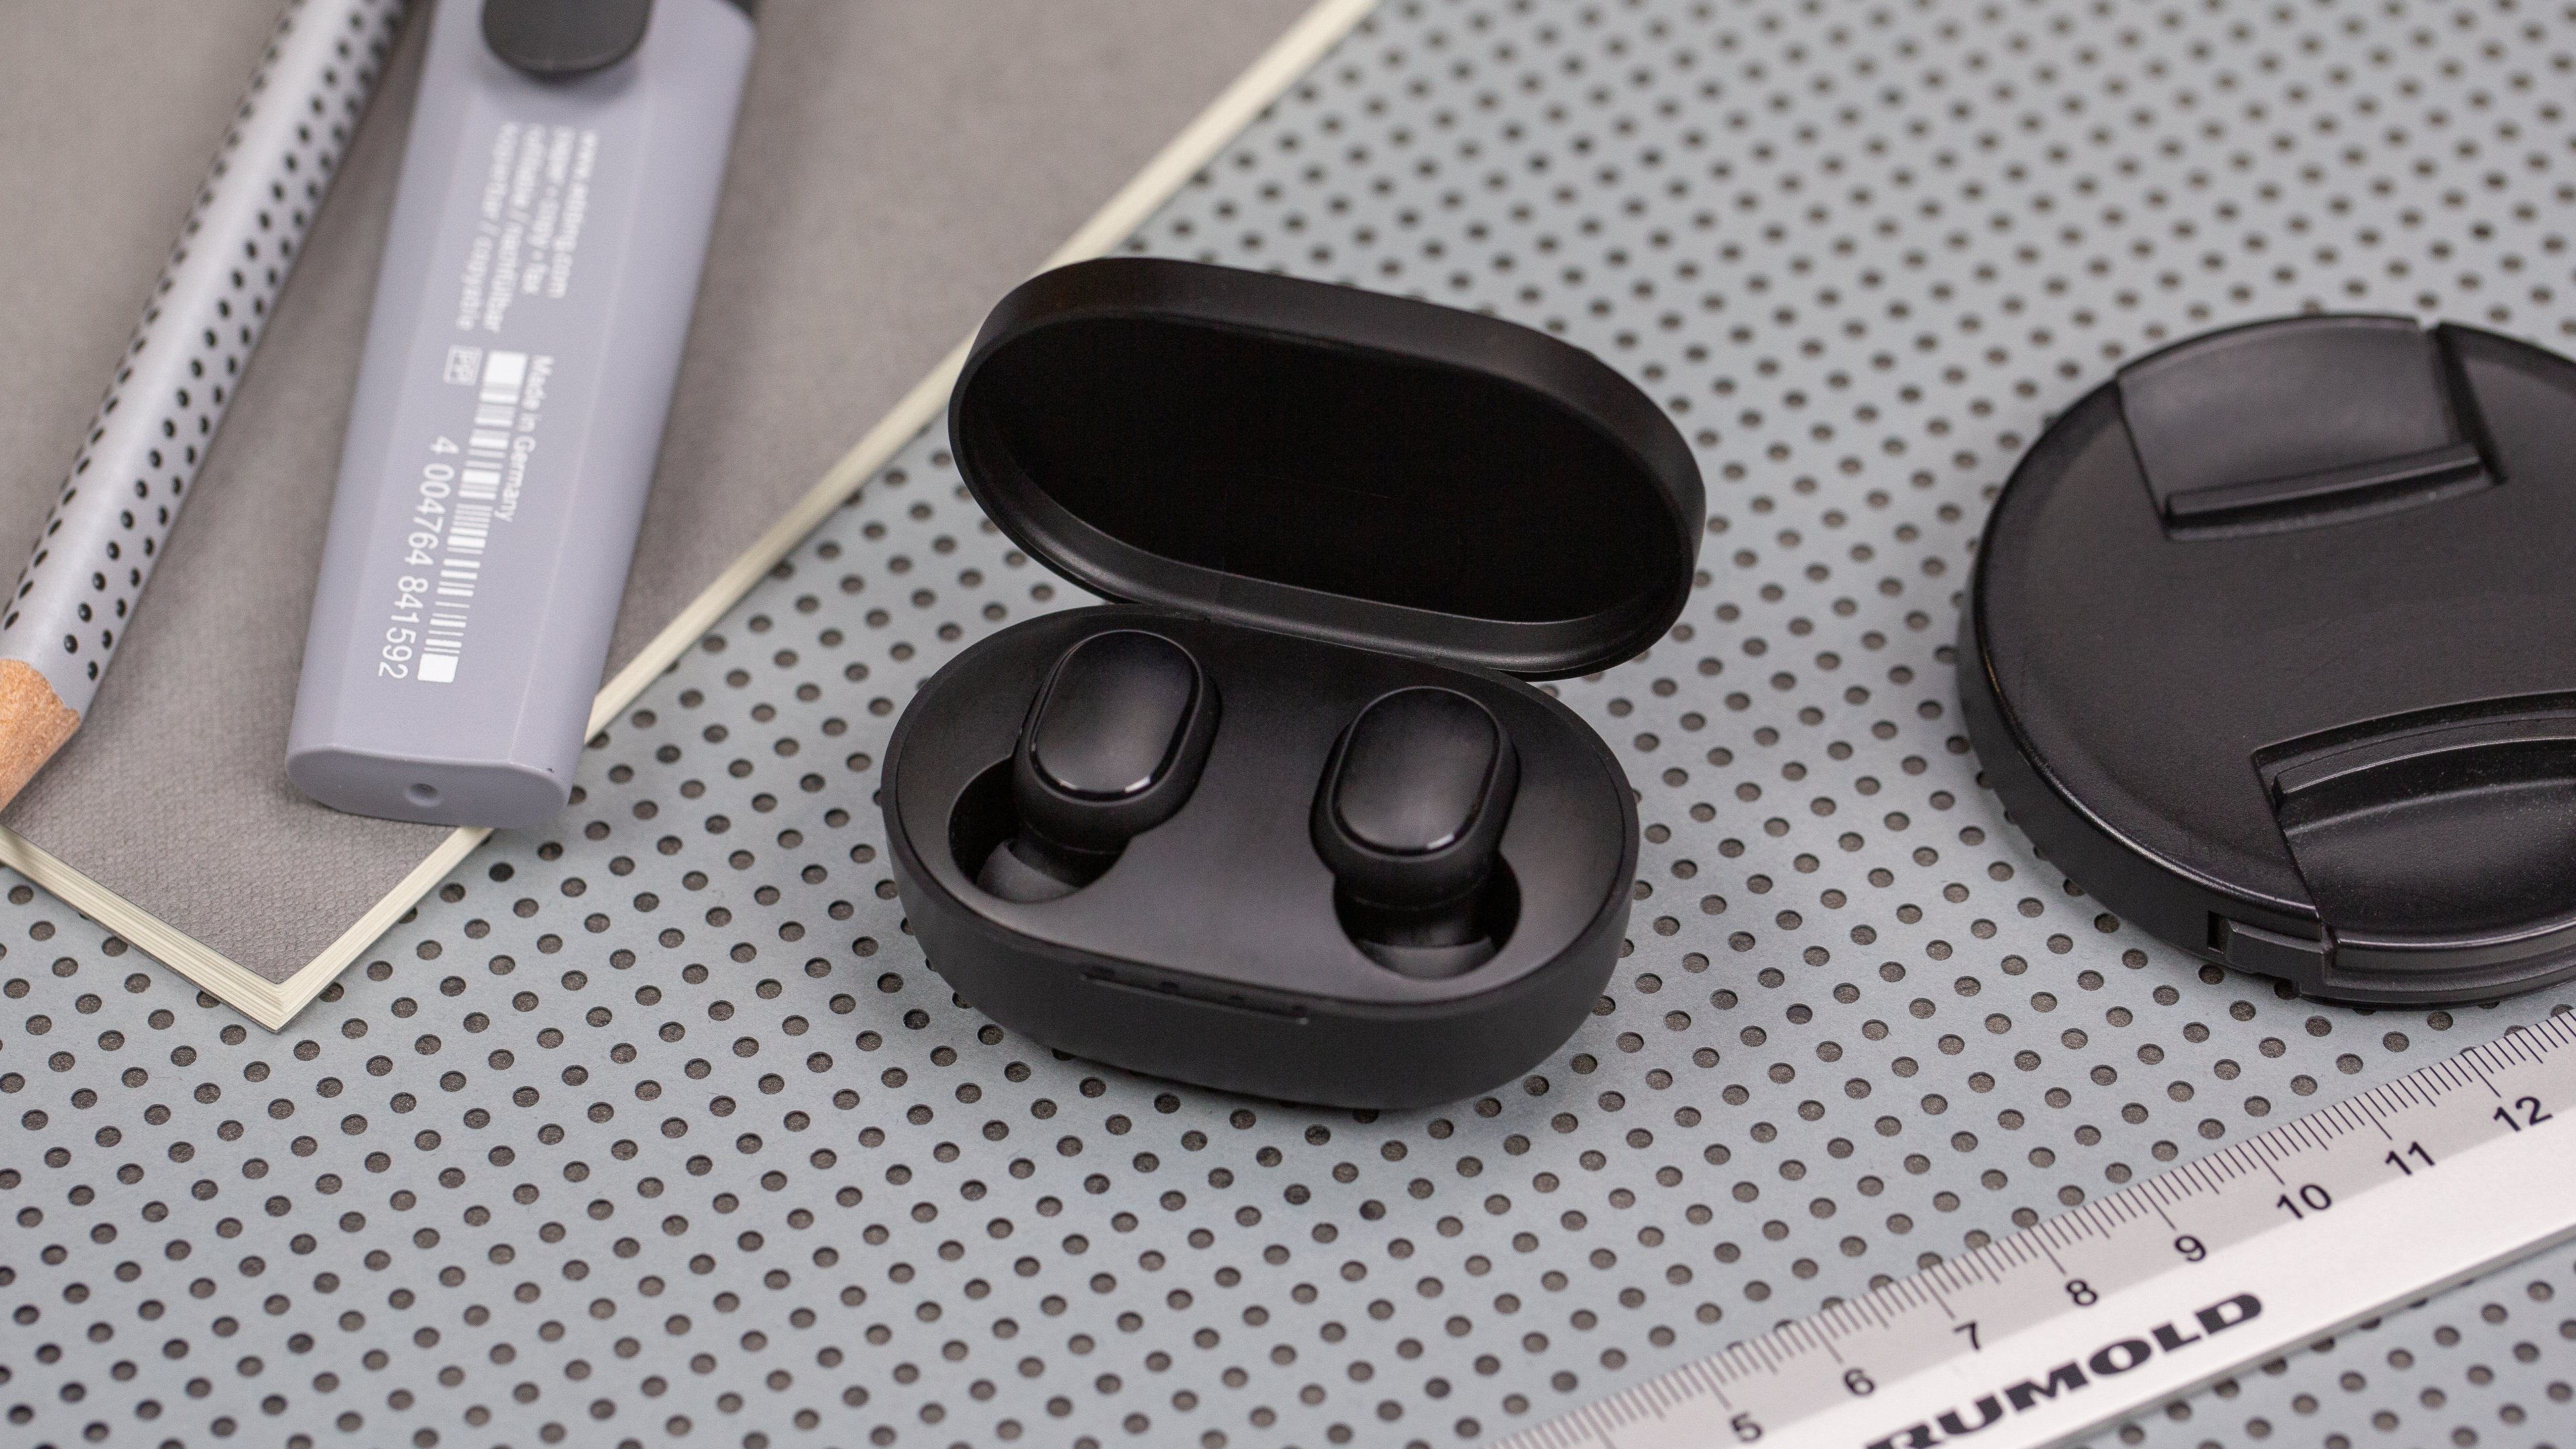 Redmi AirDots review: impossible to find better for 30 bucks, Next TGP